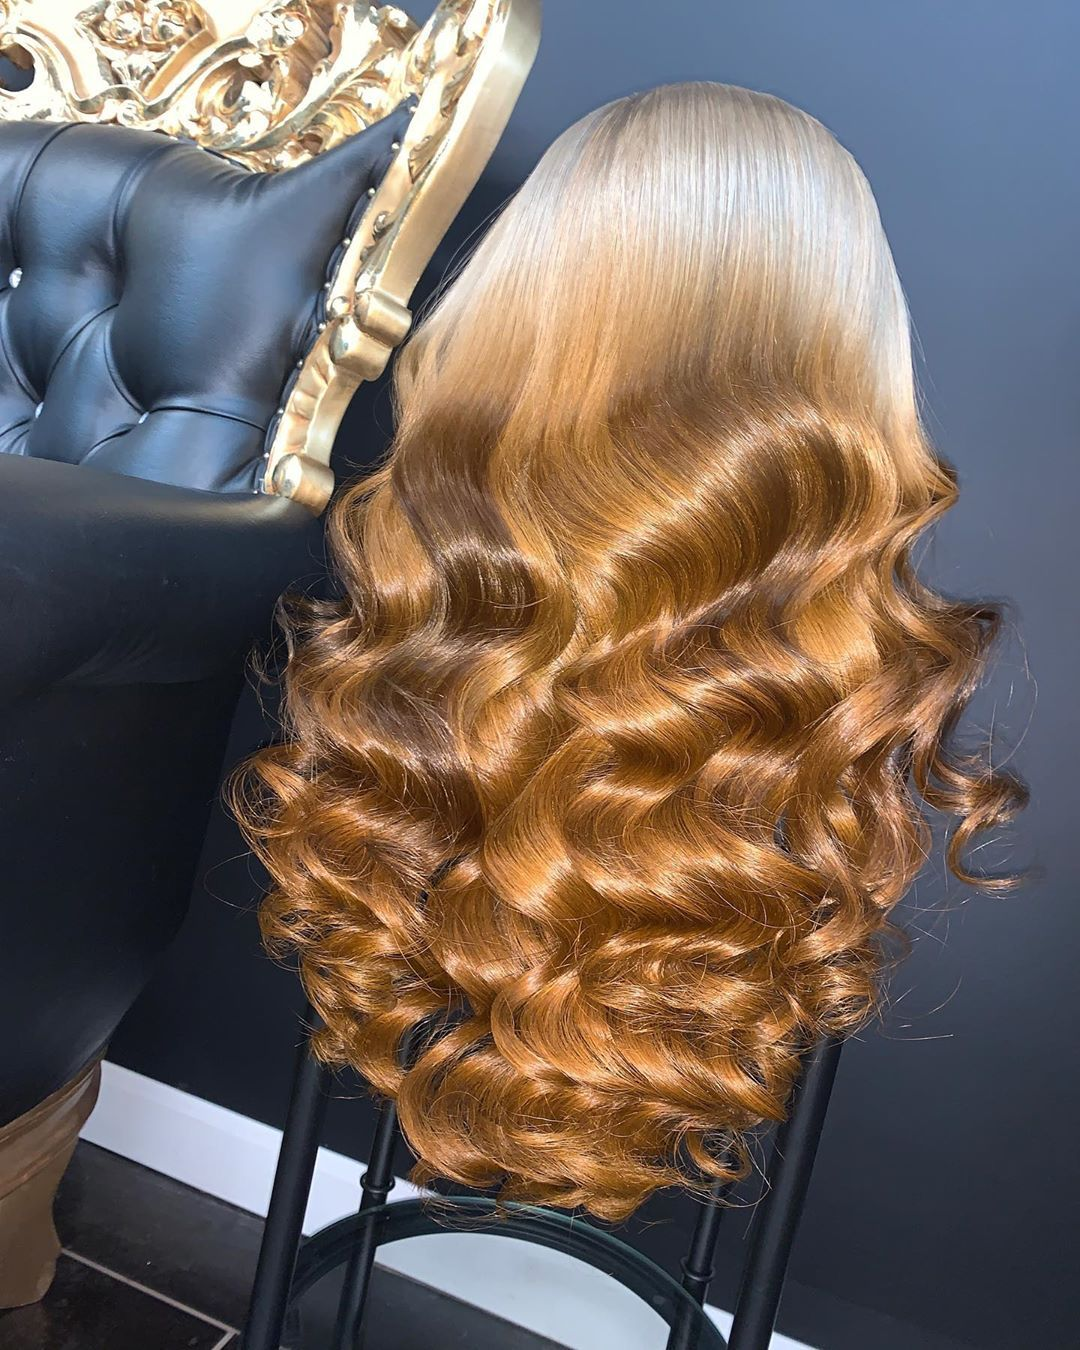 Lace Front Wigs Brown Wigs Blonde Wigs Blonde Balayage With Dark Roots Strawberry Blonde Hair Color Wigs For Black Women